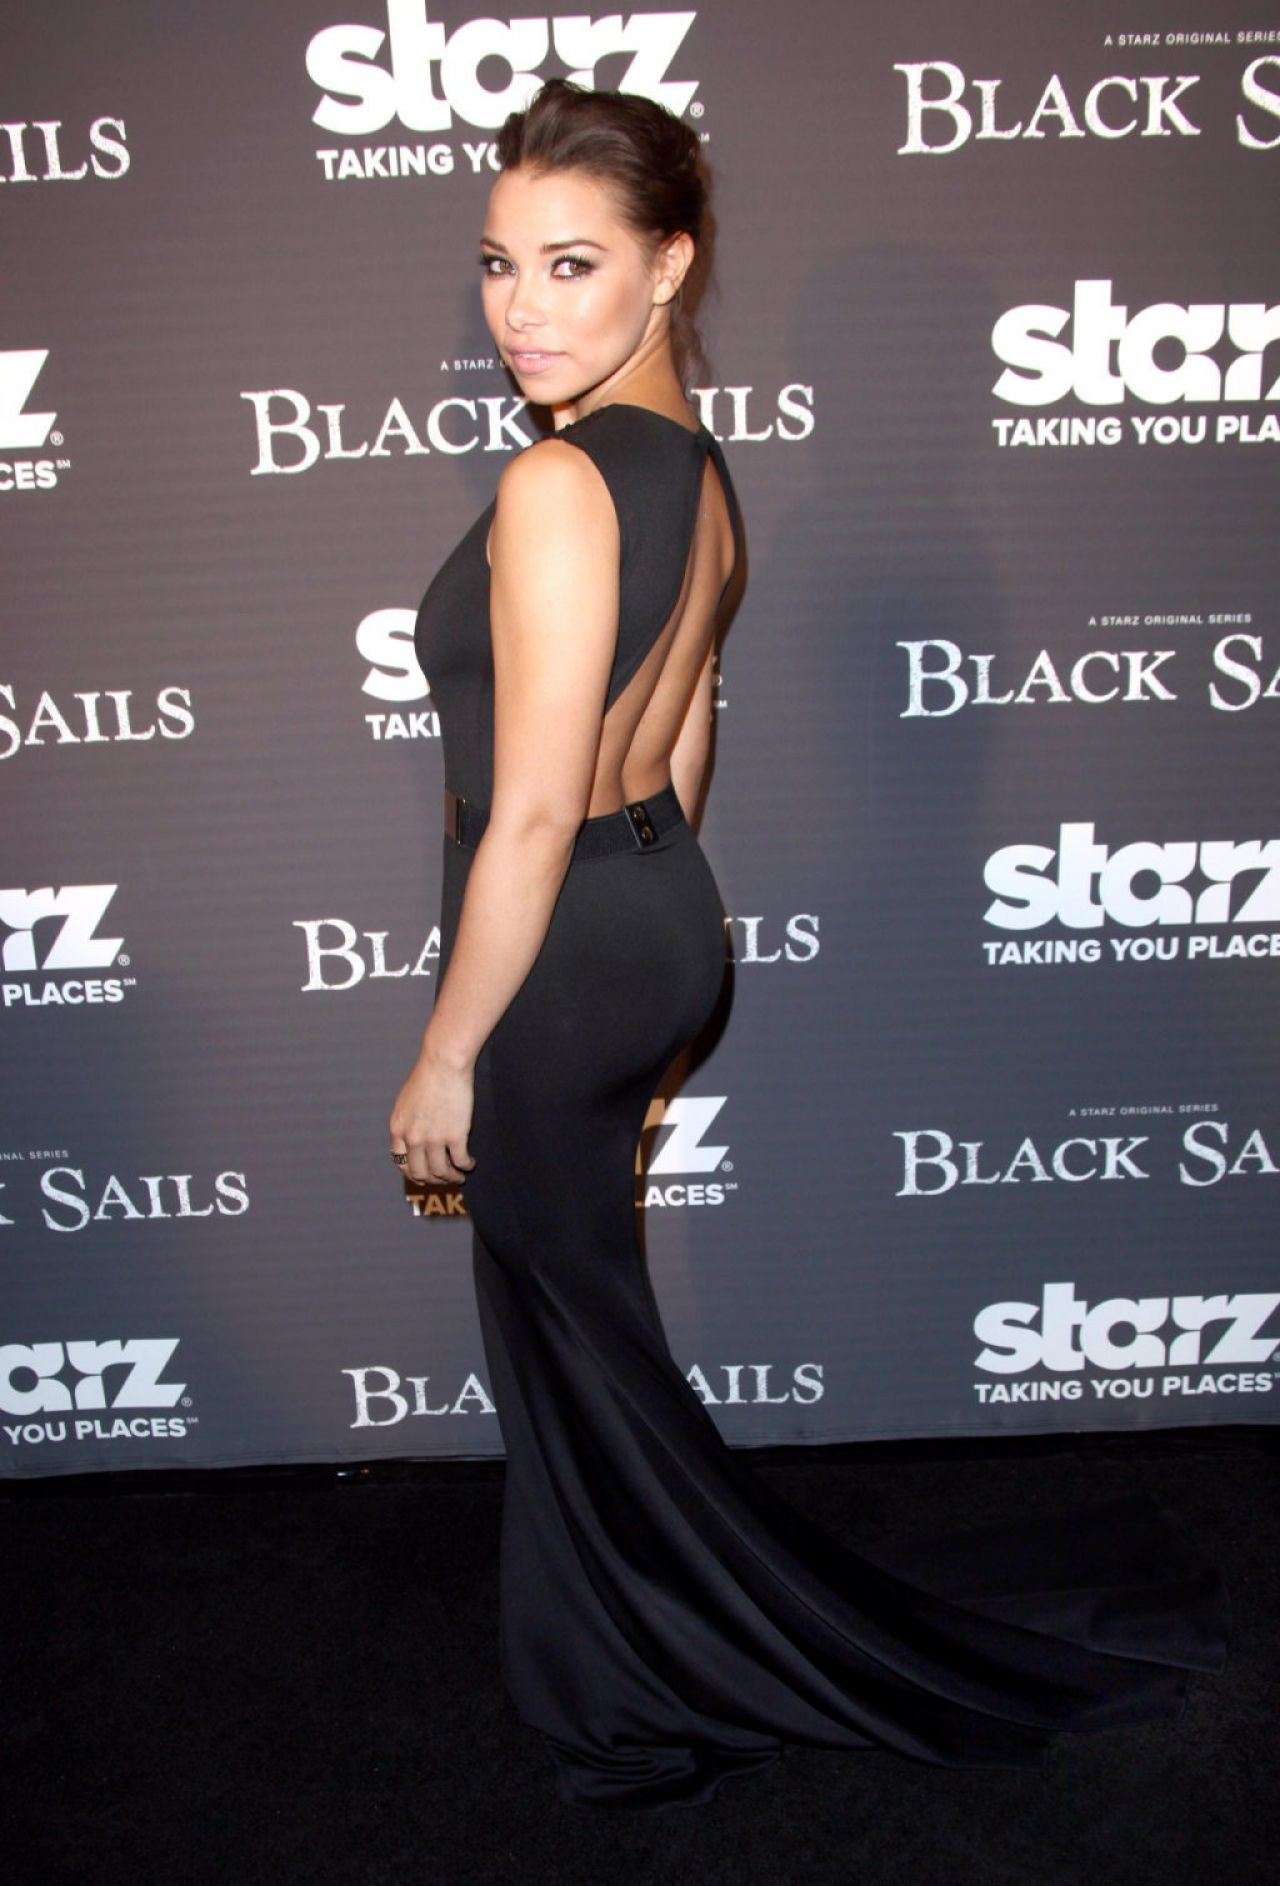 Jessica Parker Kennedy - STARZ BLACK SAILS Screening in Los Angeles - January 2014